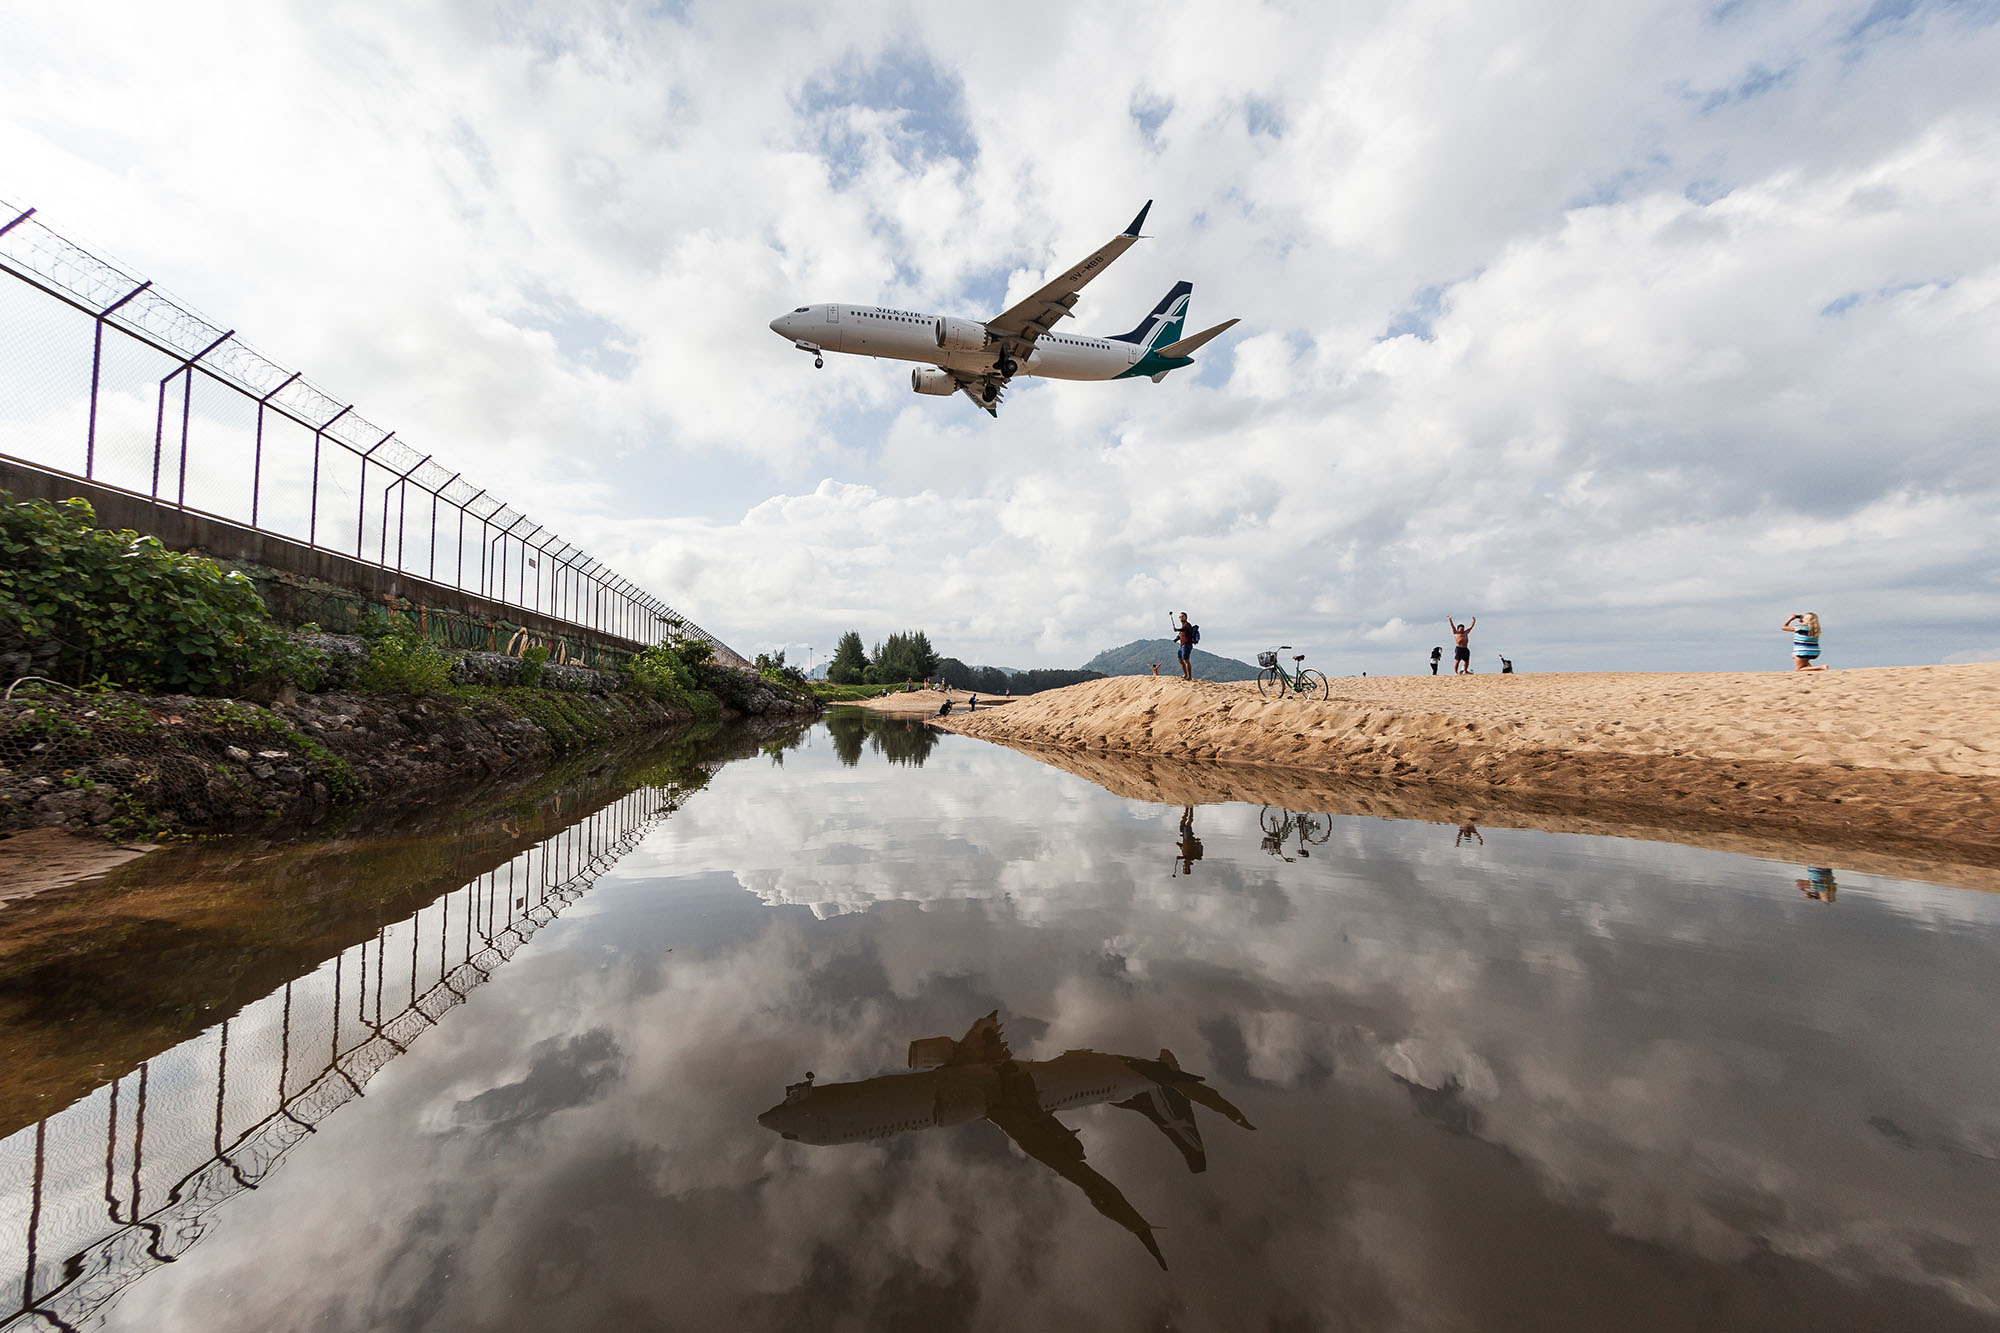 Going Direct: Why Boeing's 737 Max Catastrophe Paints A Picture Of A Deeply Troubled Company